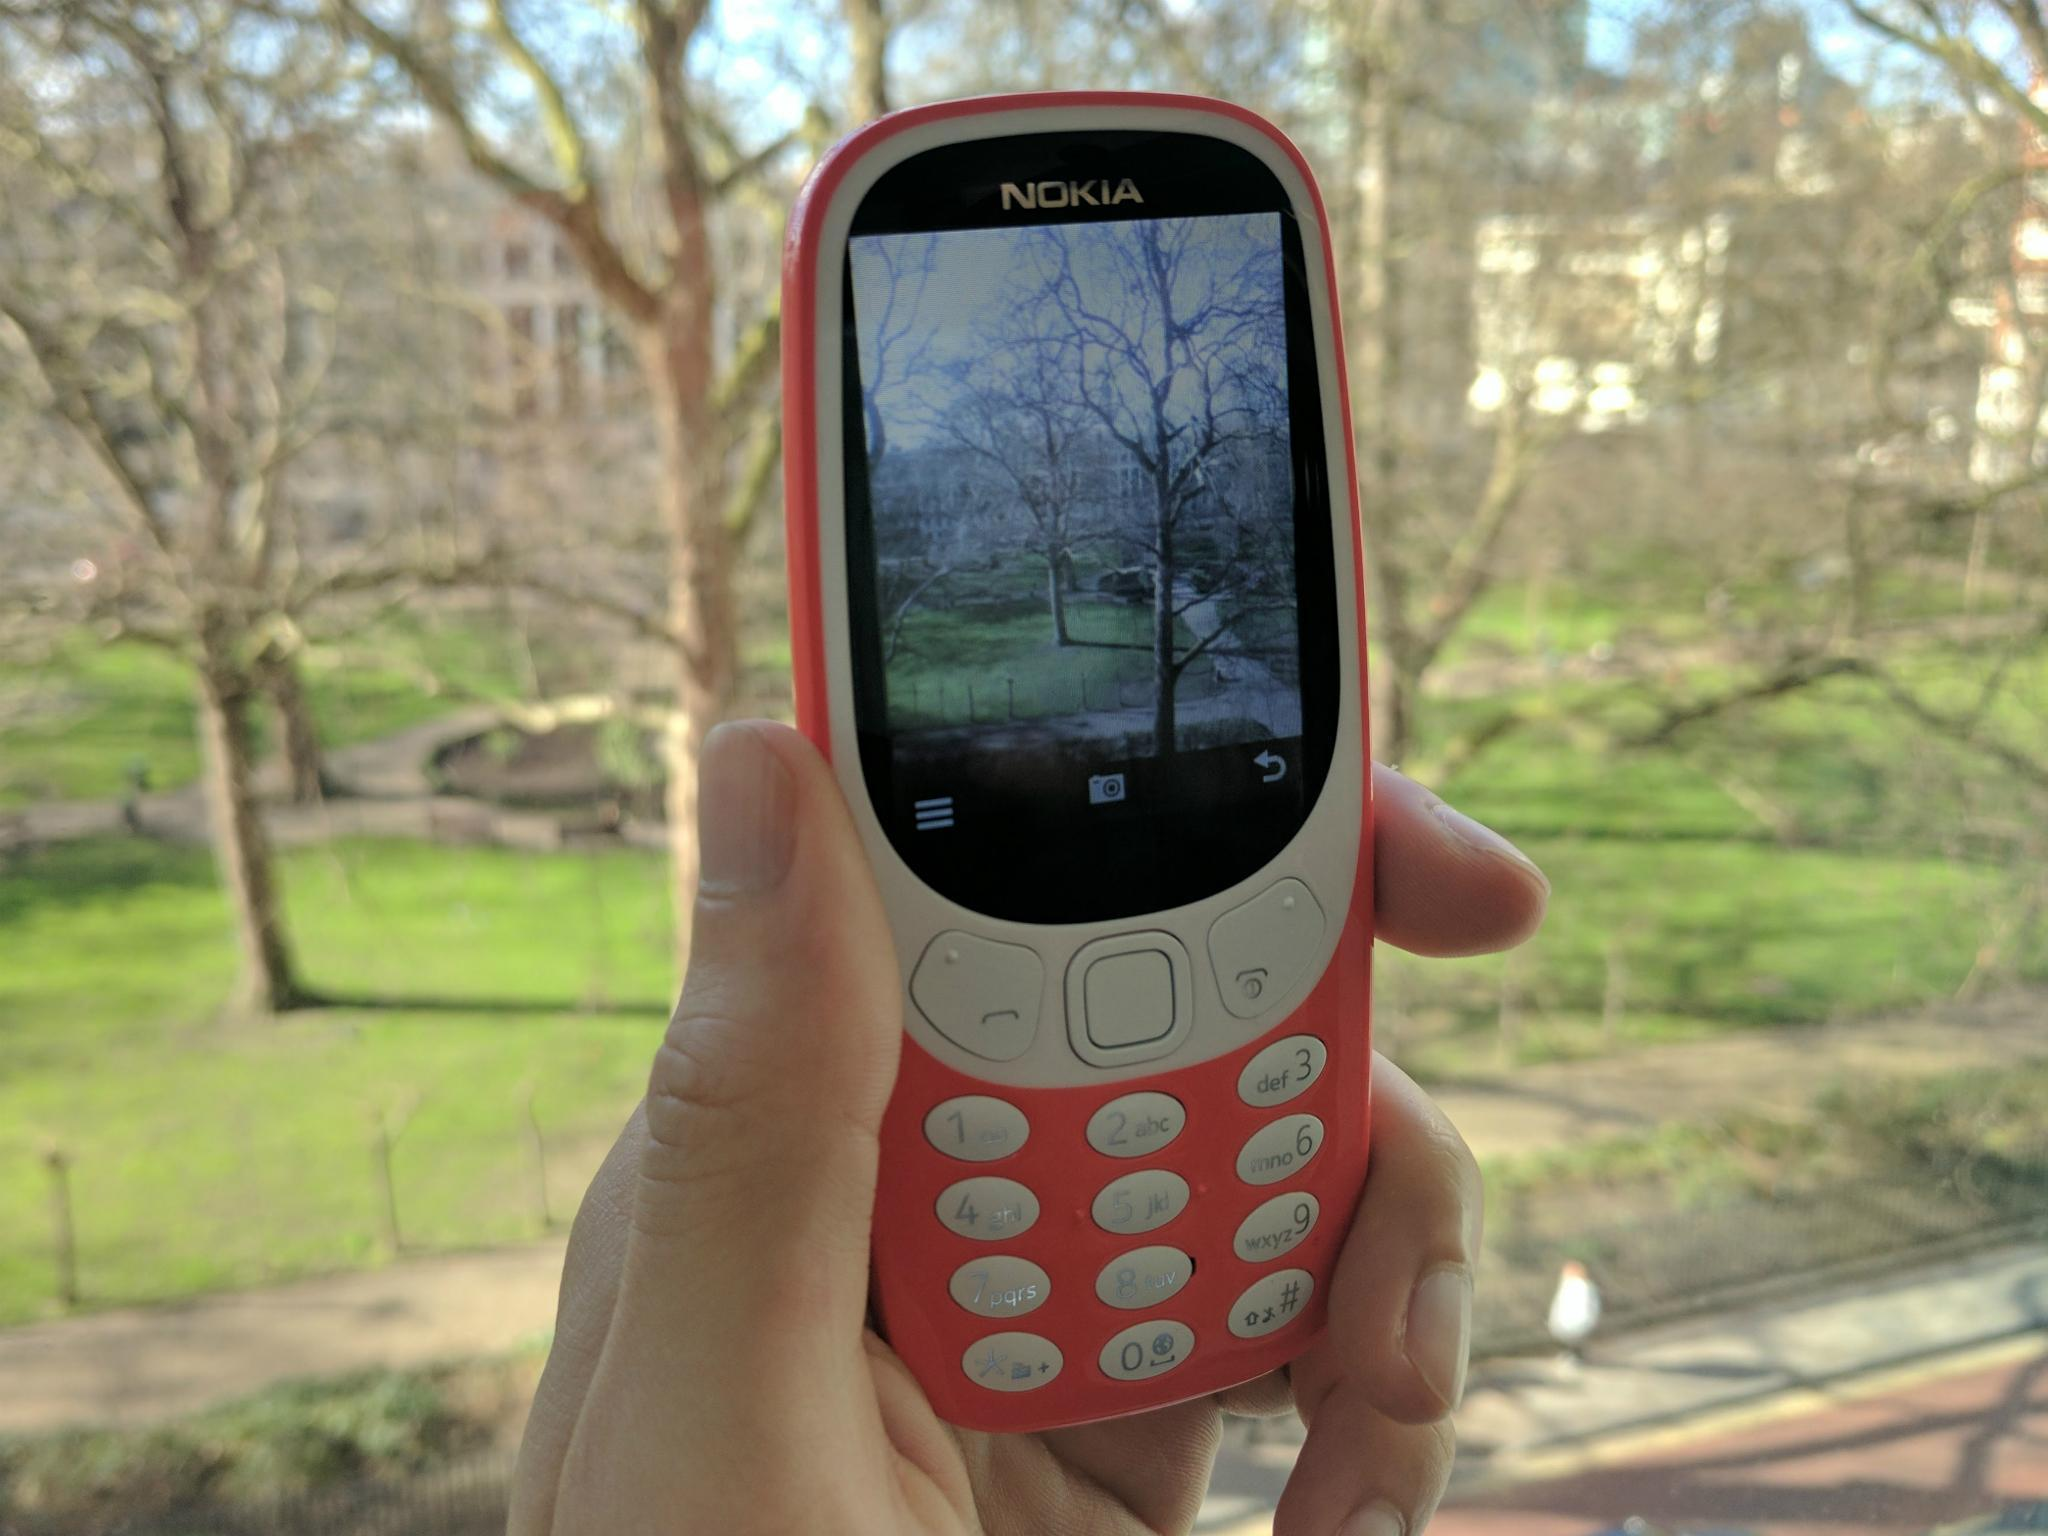 Nokia 3310 hands-on review: The world's most reliable phone, even